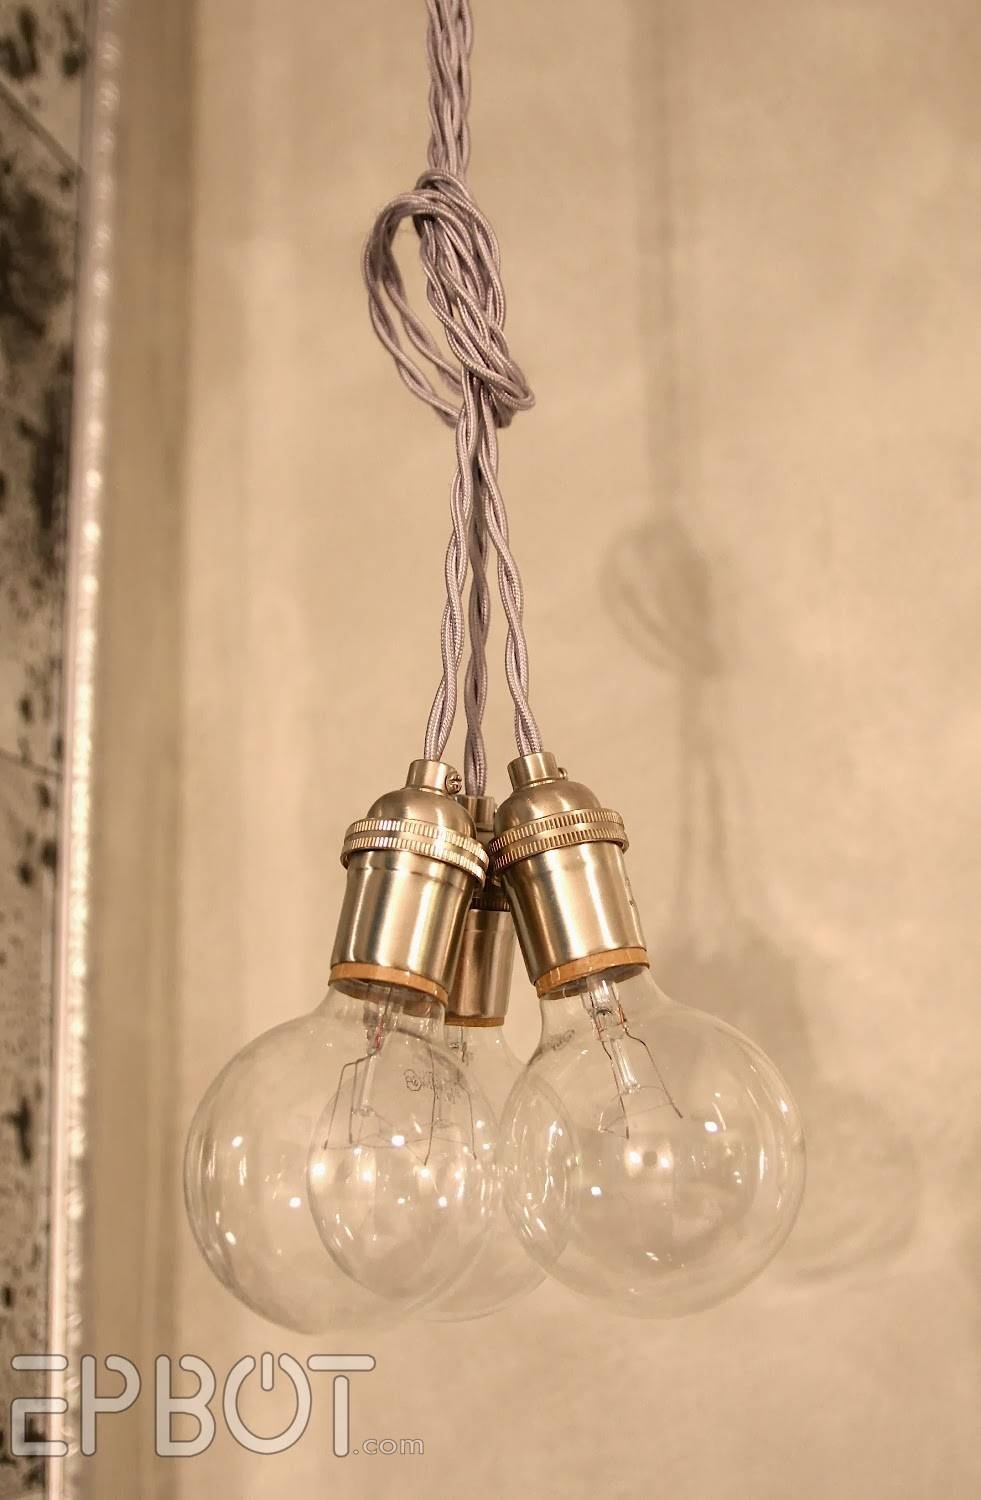 Epbot: Wire Your Own Pendant Lighting - Cheap, Easy, & Fun! with Make Your Own Pendant Lights (Image 6 of 15)